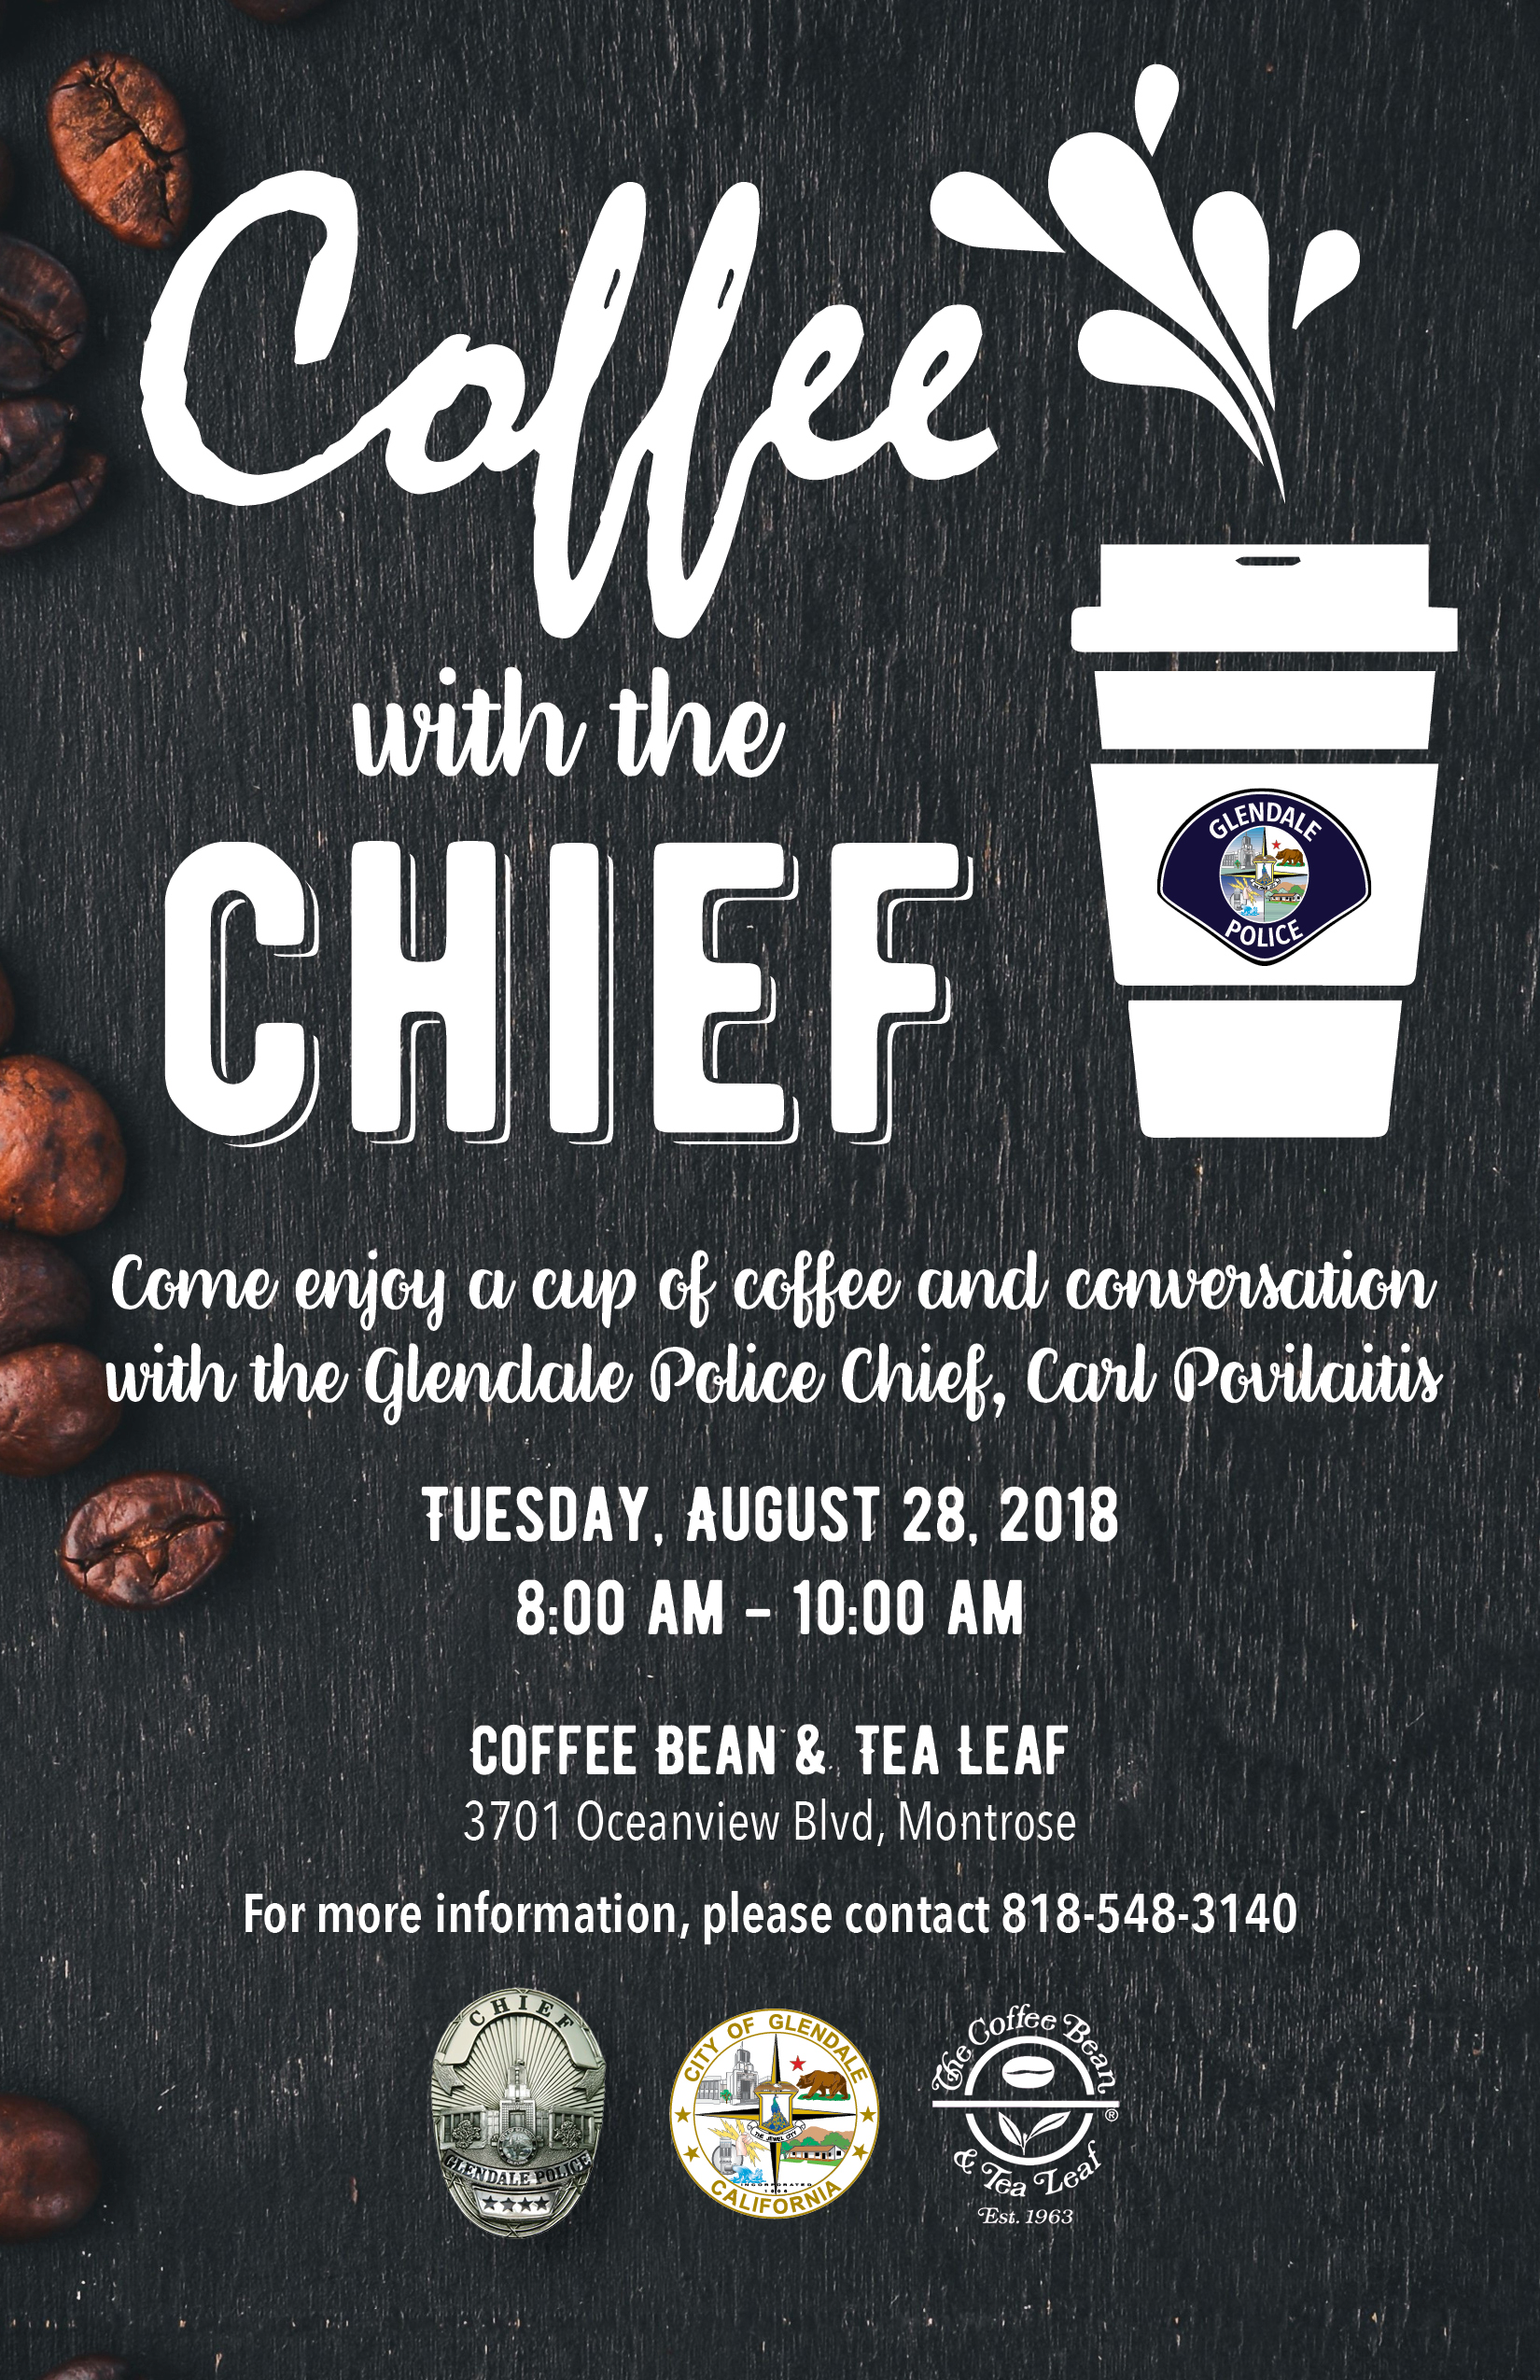 Coffee with the Chief @ Coffee Bean & Tea Leaf | Glendale | California | United States